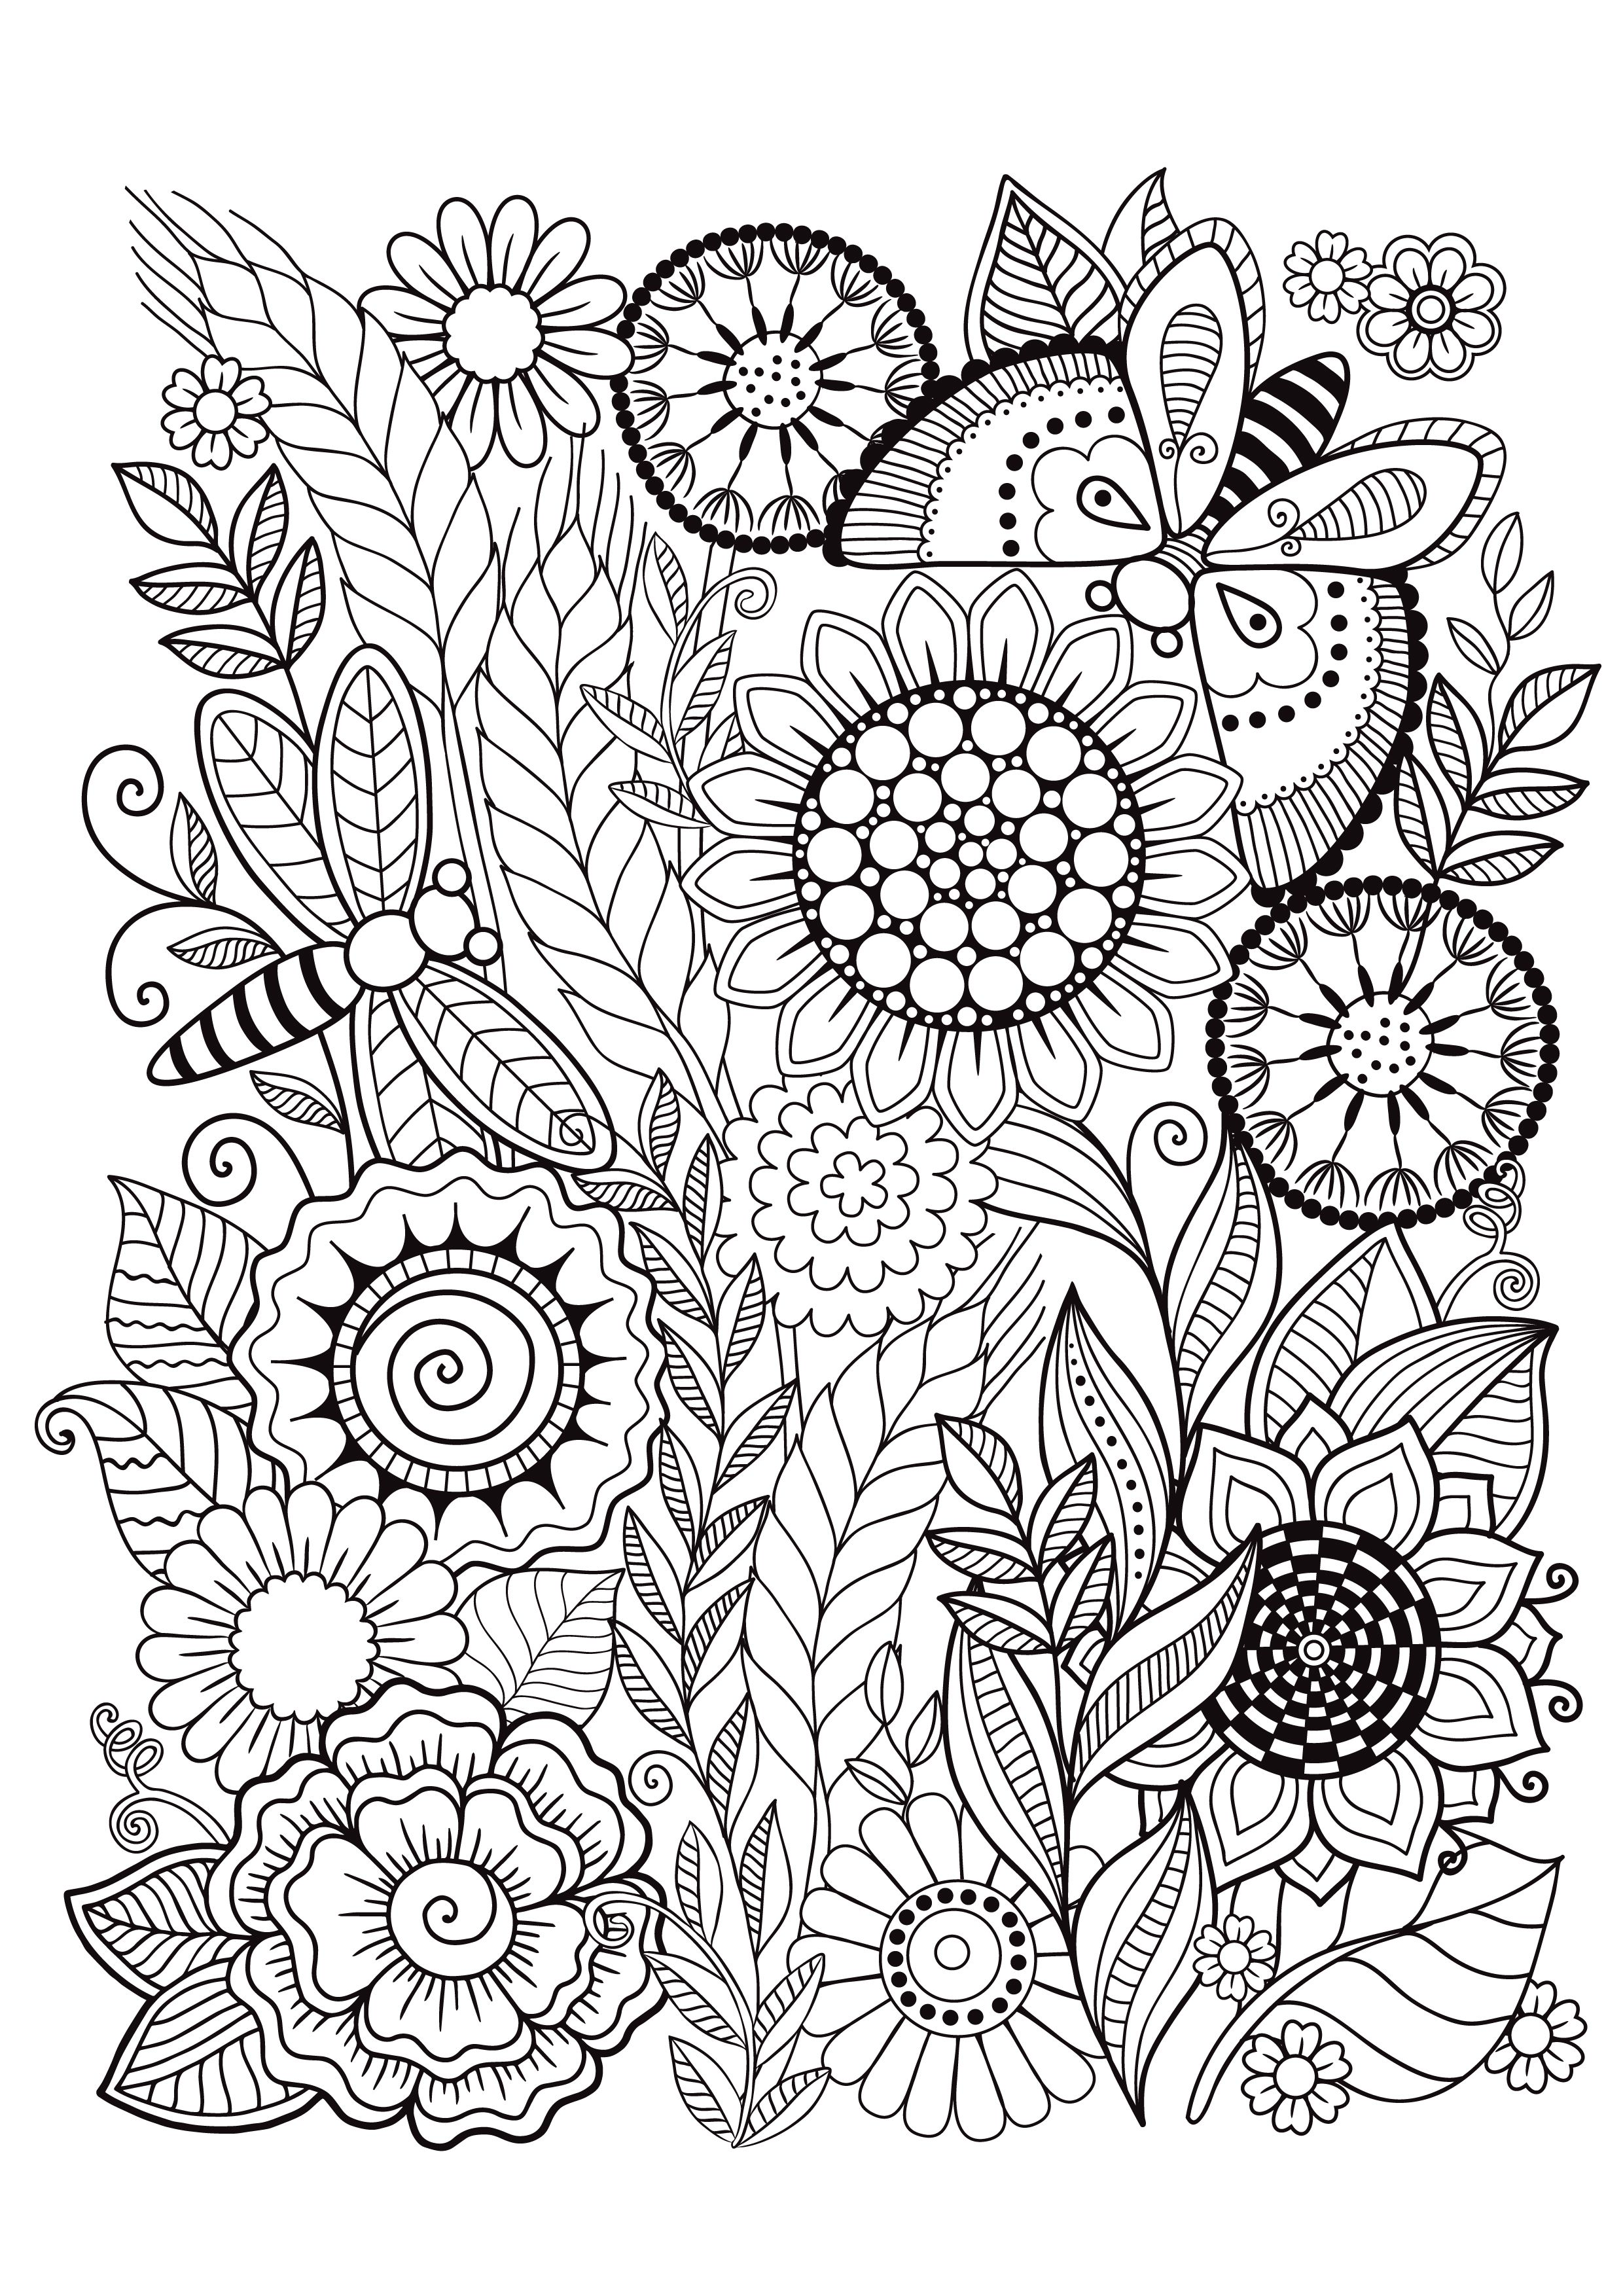 Mindfulness Coloring Mindfulness Colouring Flower Coloring Pages Coloring Pages